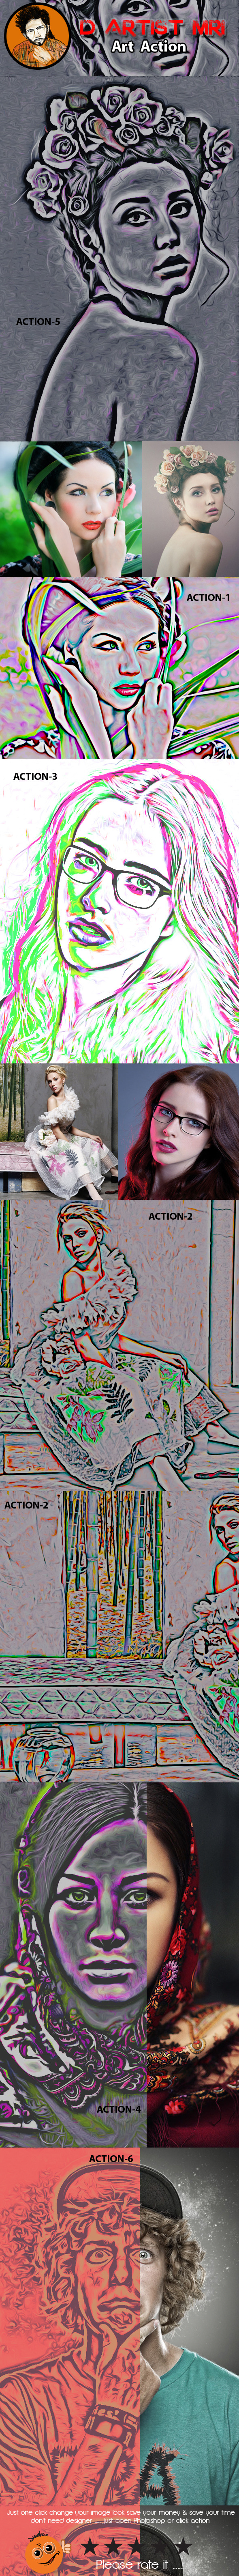 Art Action - Actions Photoshop